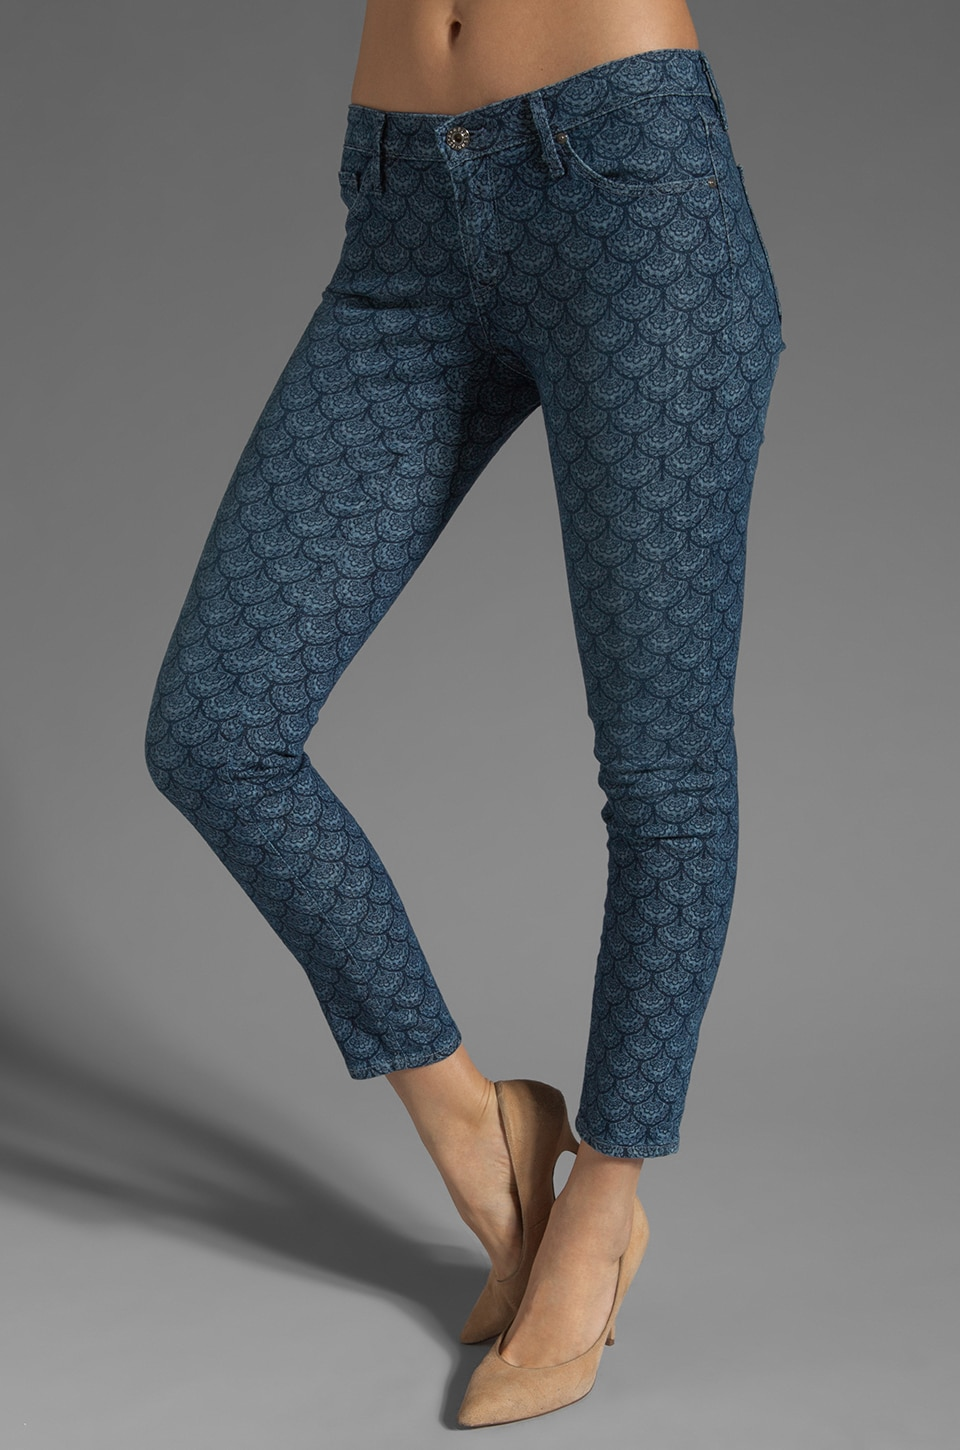 AG Adriano Goldschmied The Legging Ankle in Scallop Light Blue